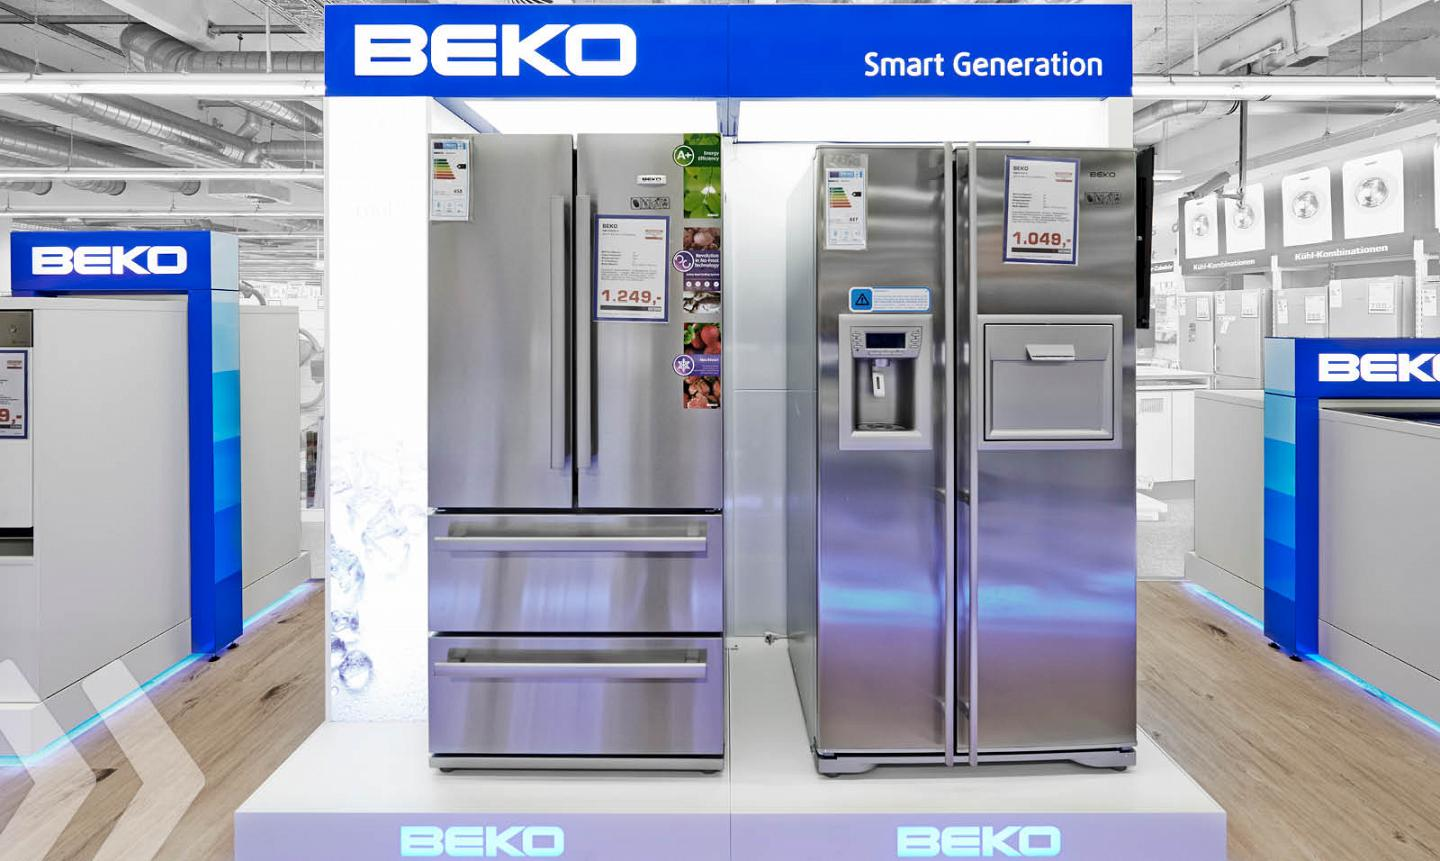 beko 03 shop in shop shop in shop systeme retail design